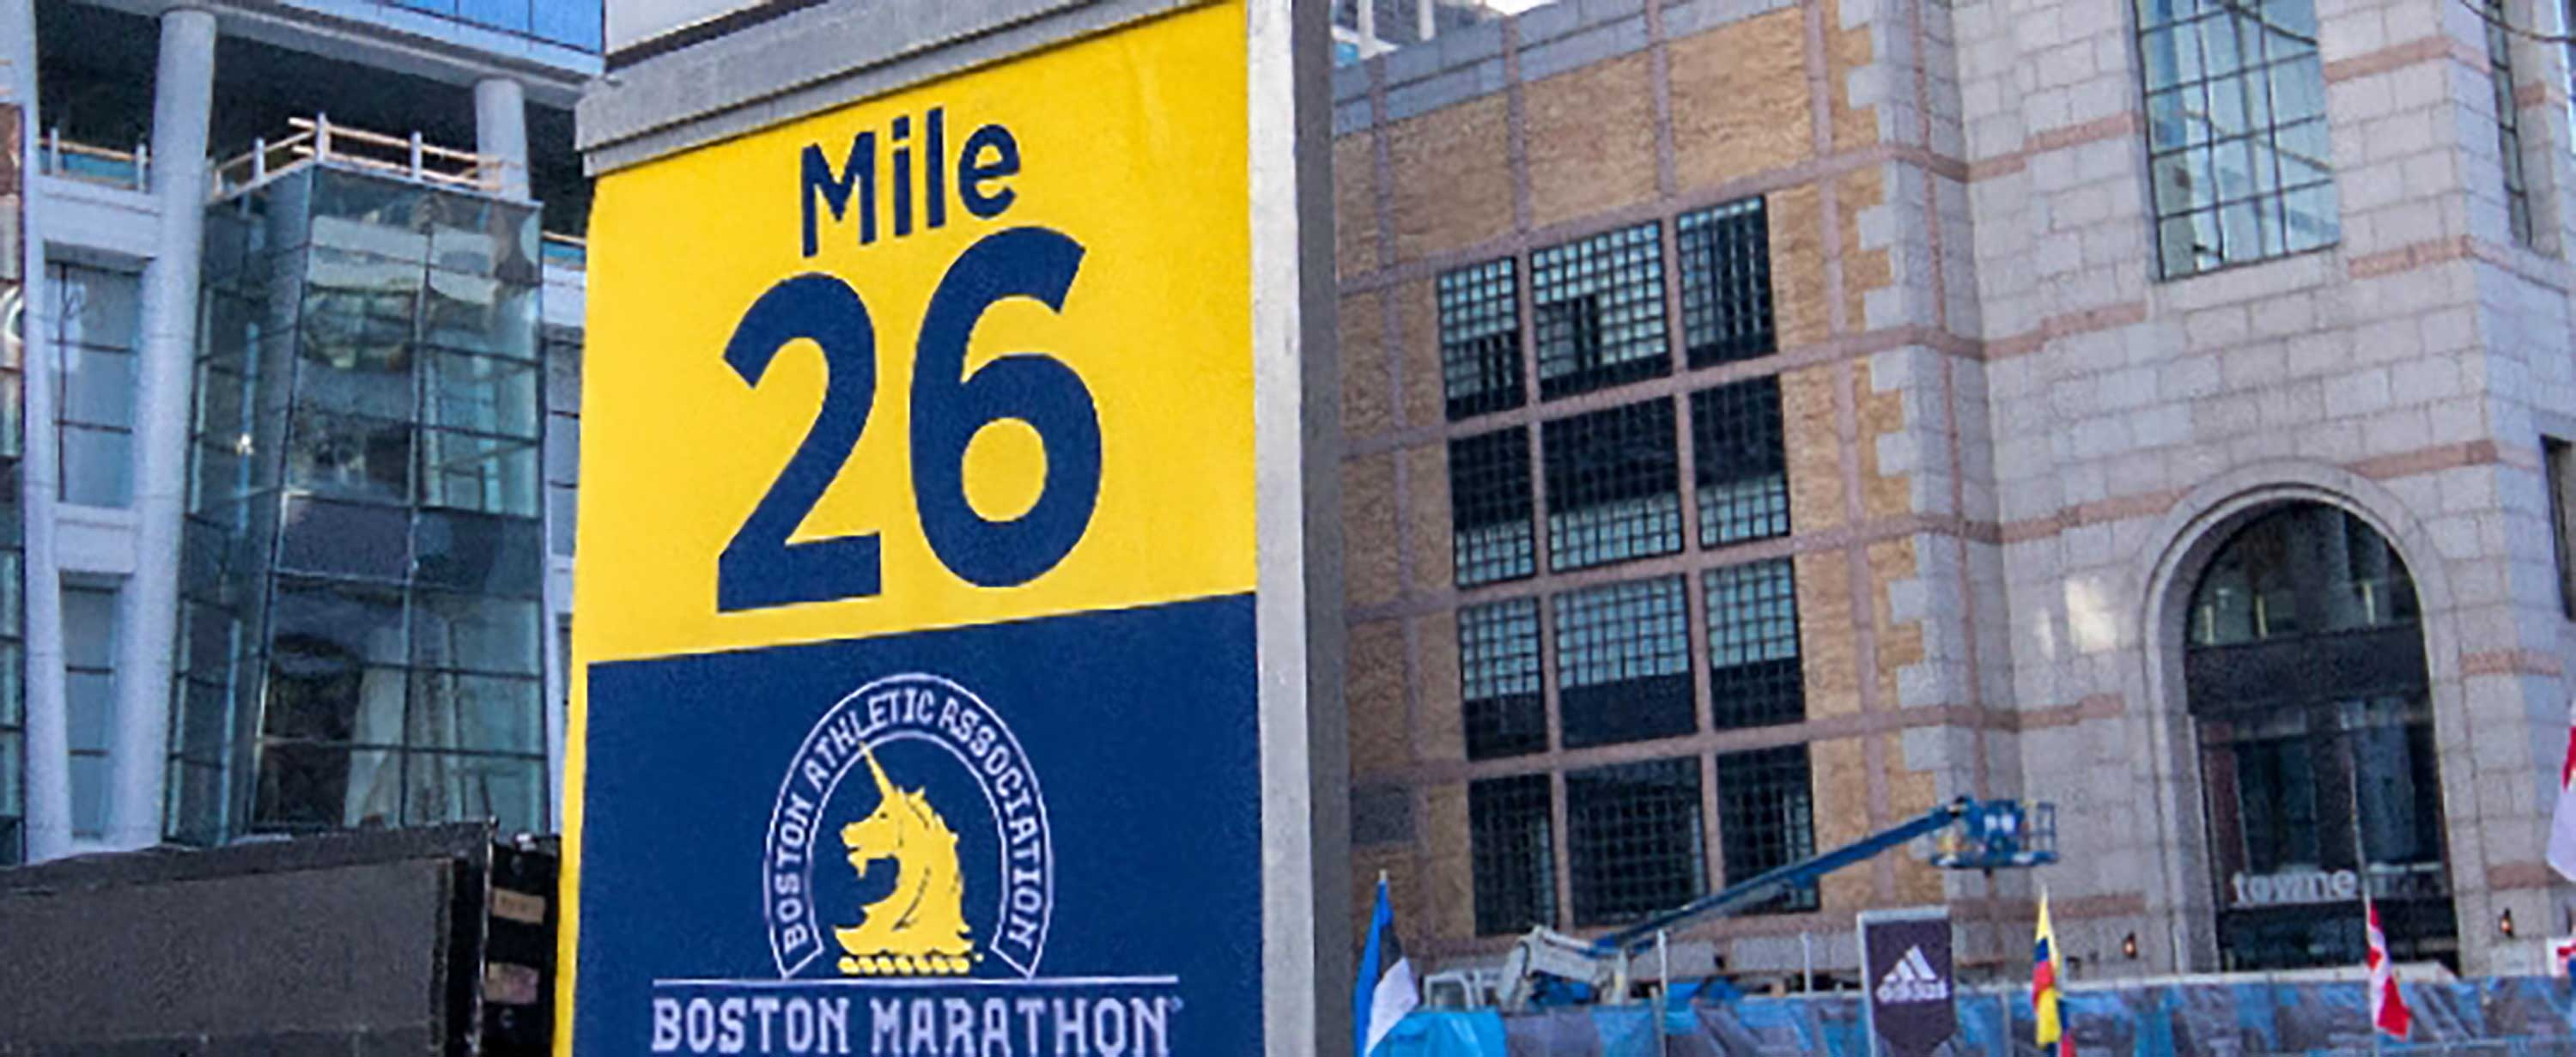 Photo of Mile 26 marker for the Boston Marathon